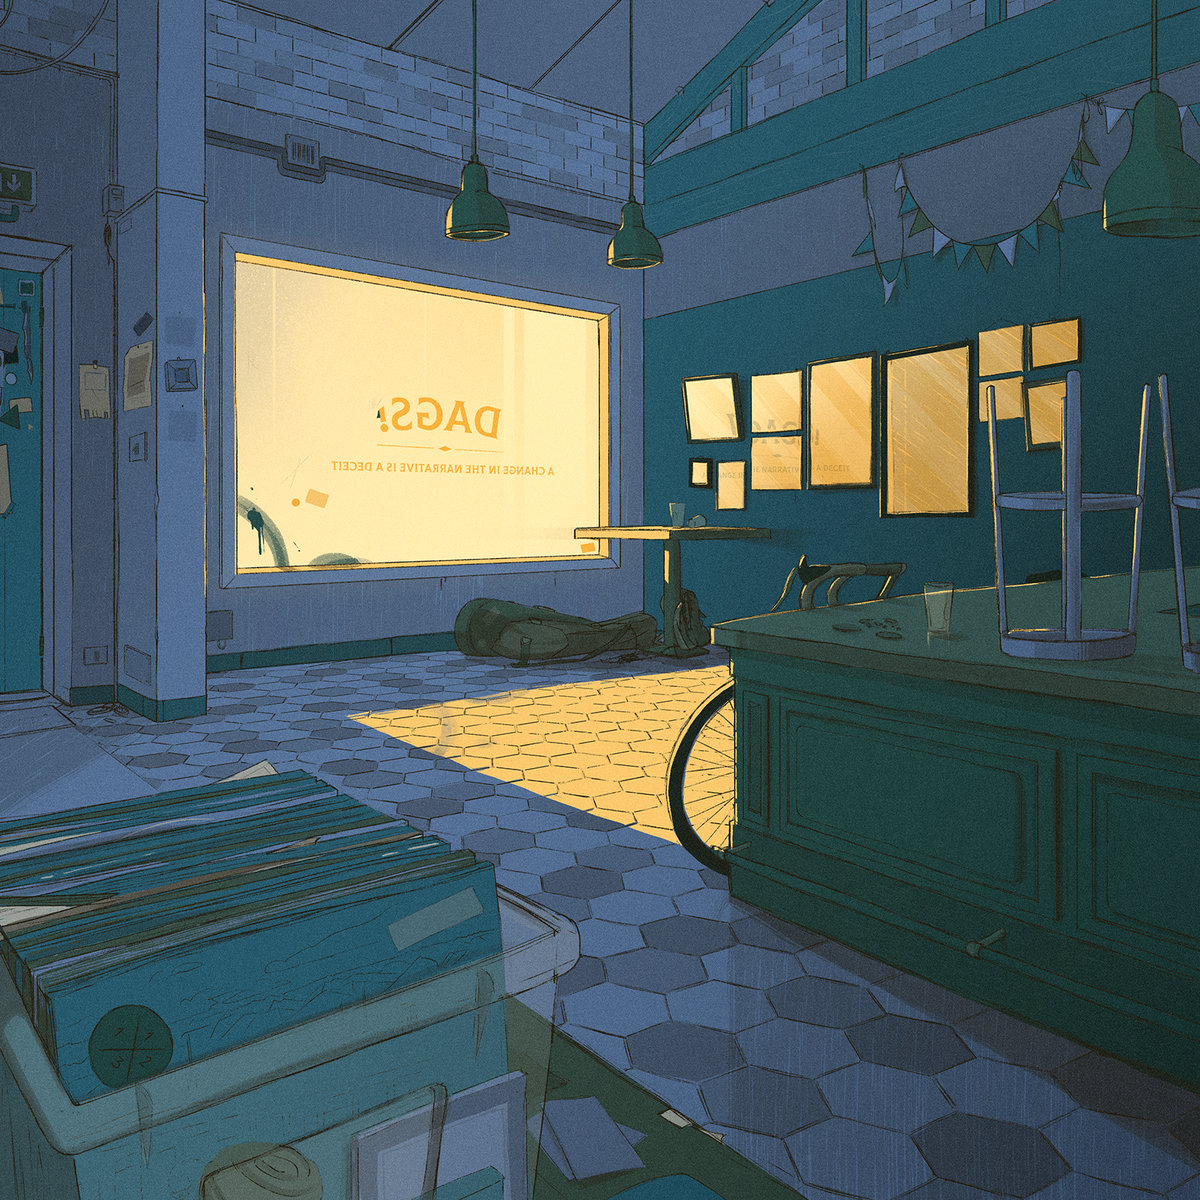 DAGS! - A change in the narrative is a deceit